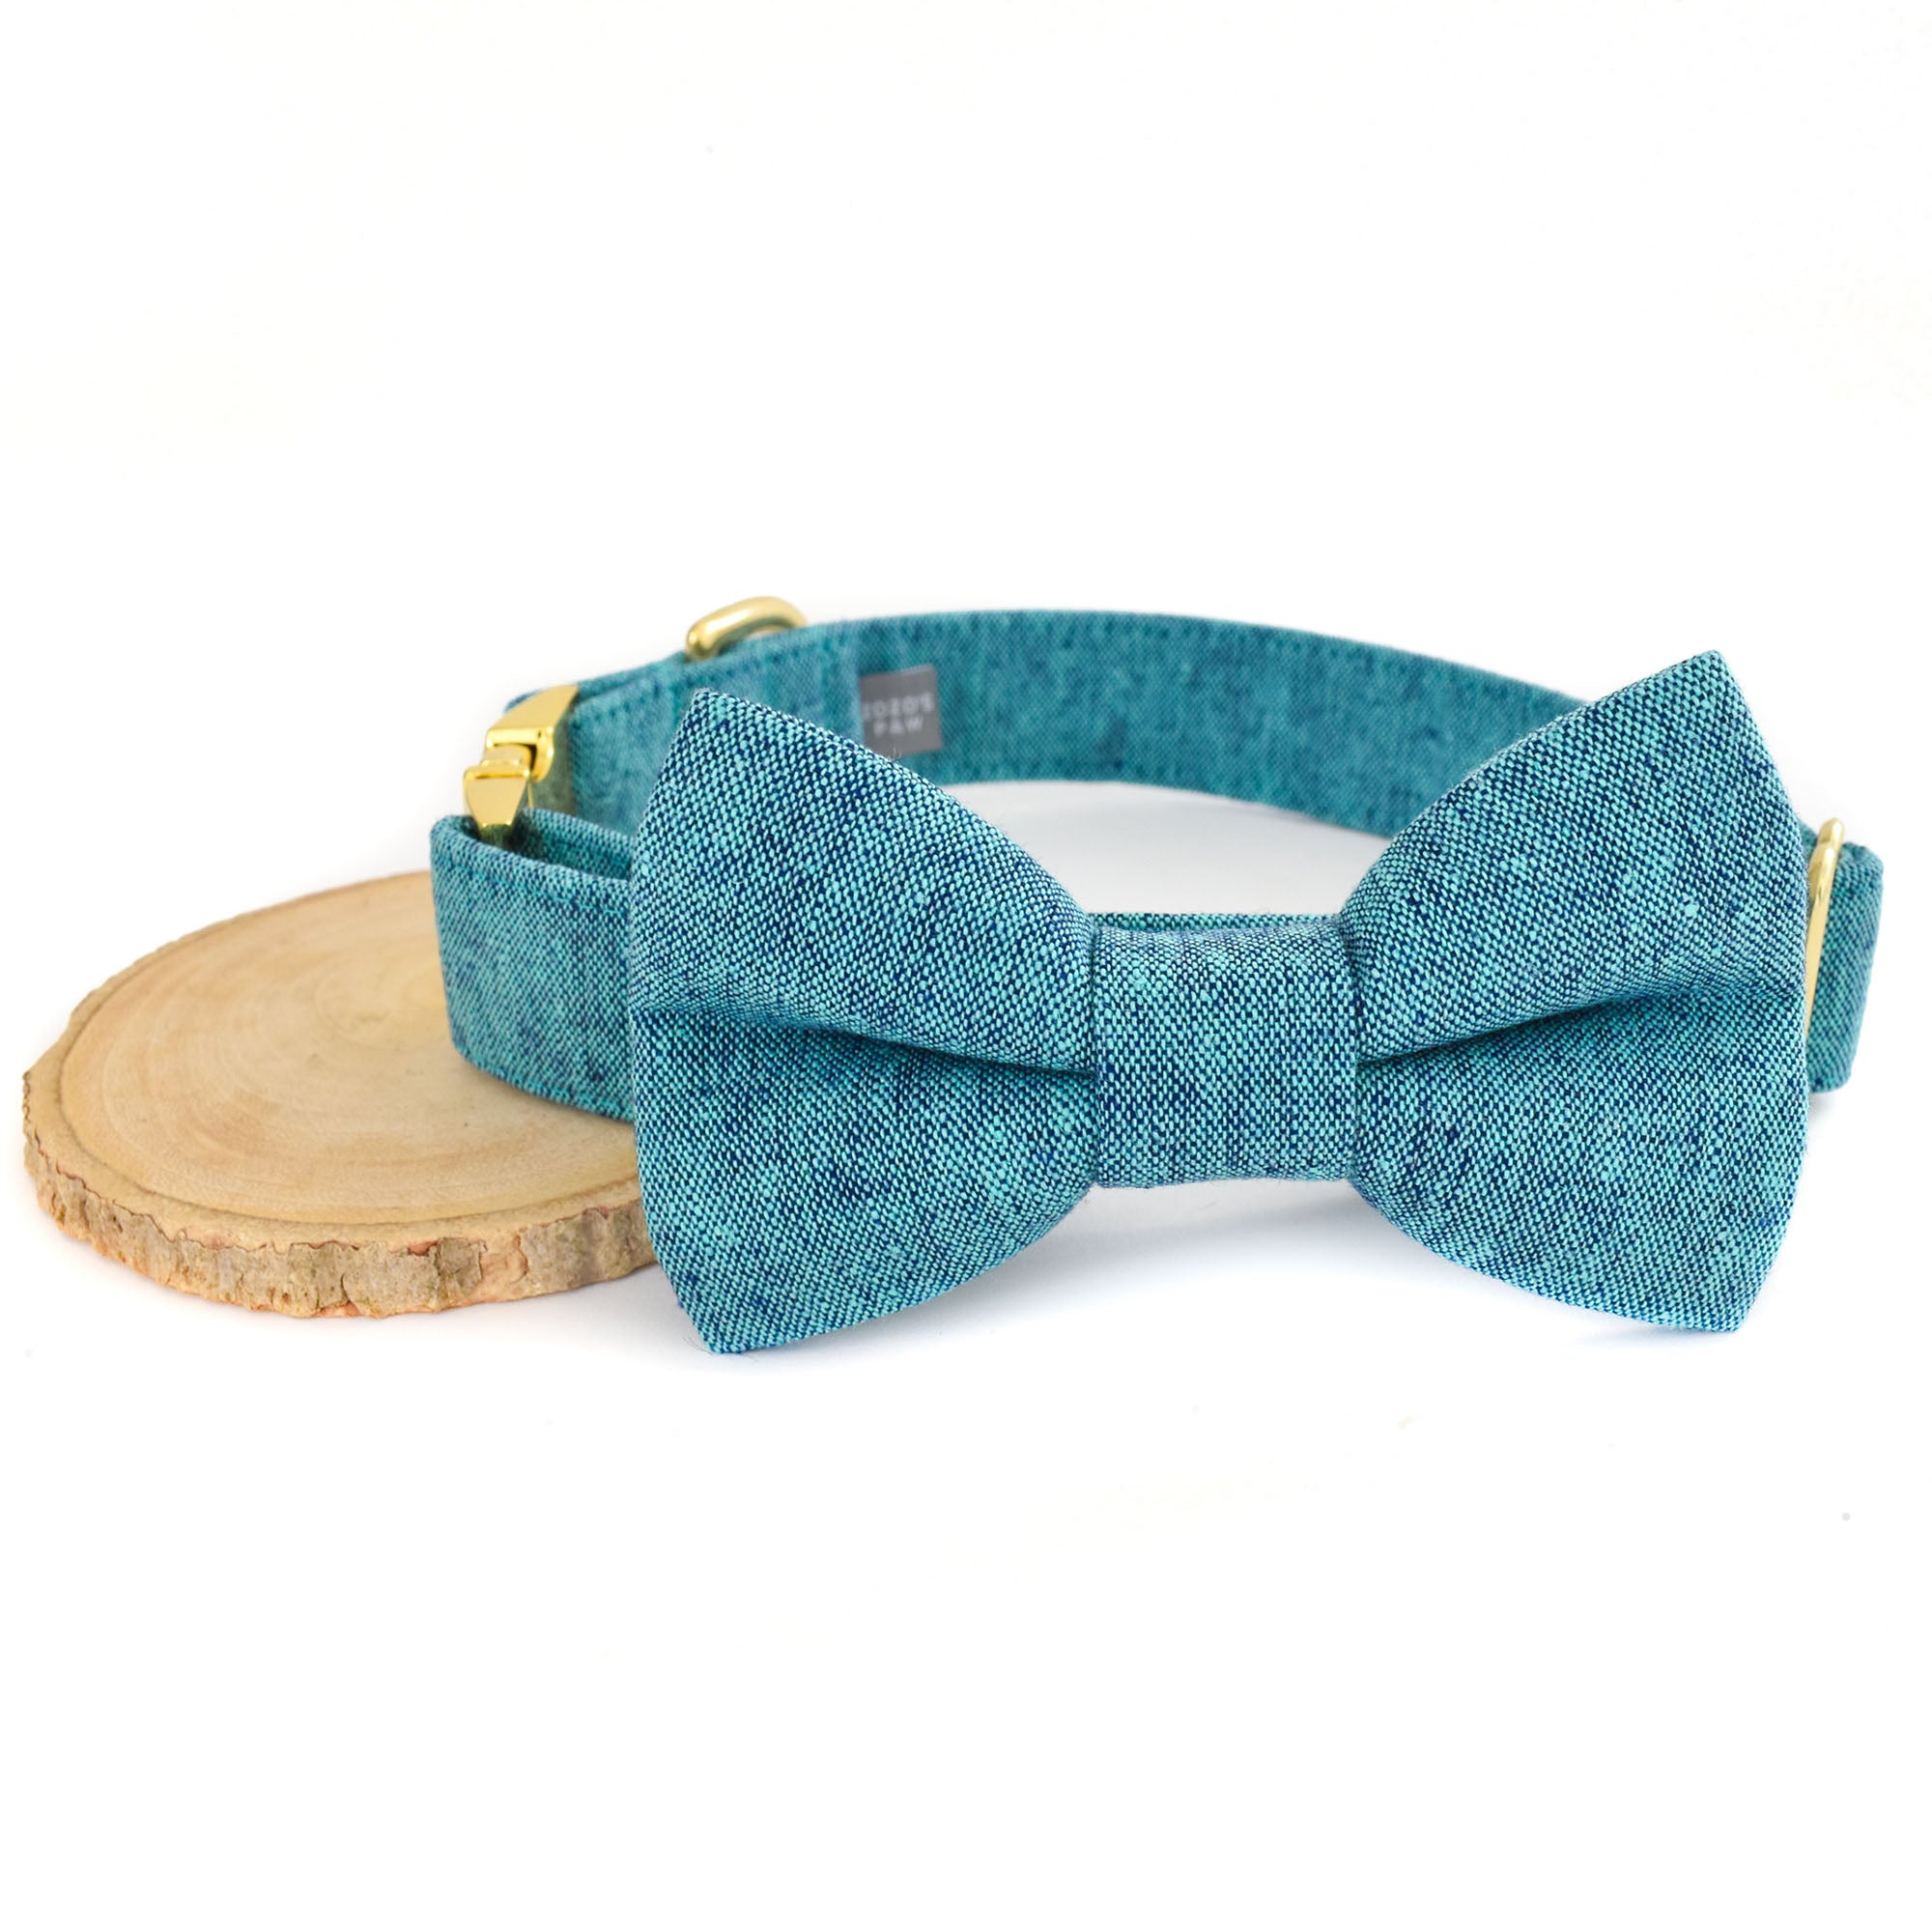 THE ERNIE DOG COLLAR AND BOW TIE SET